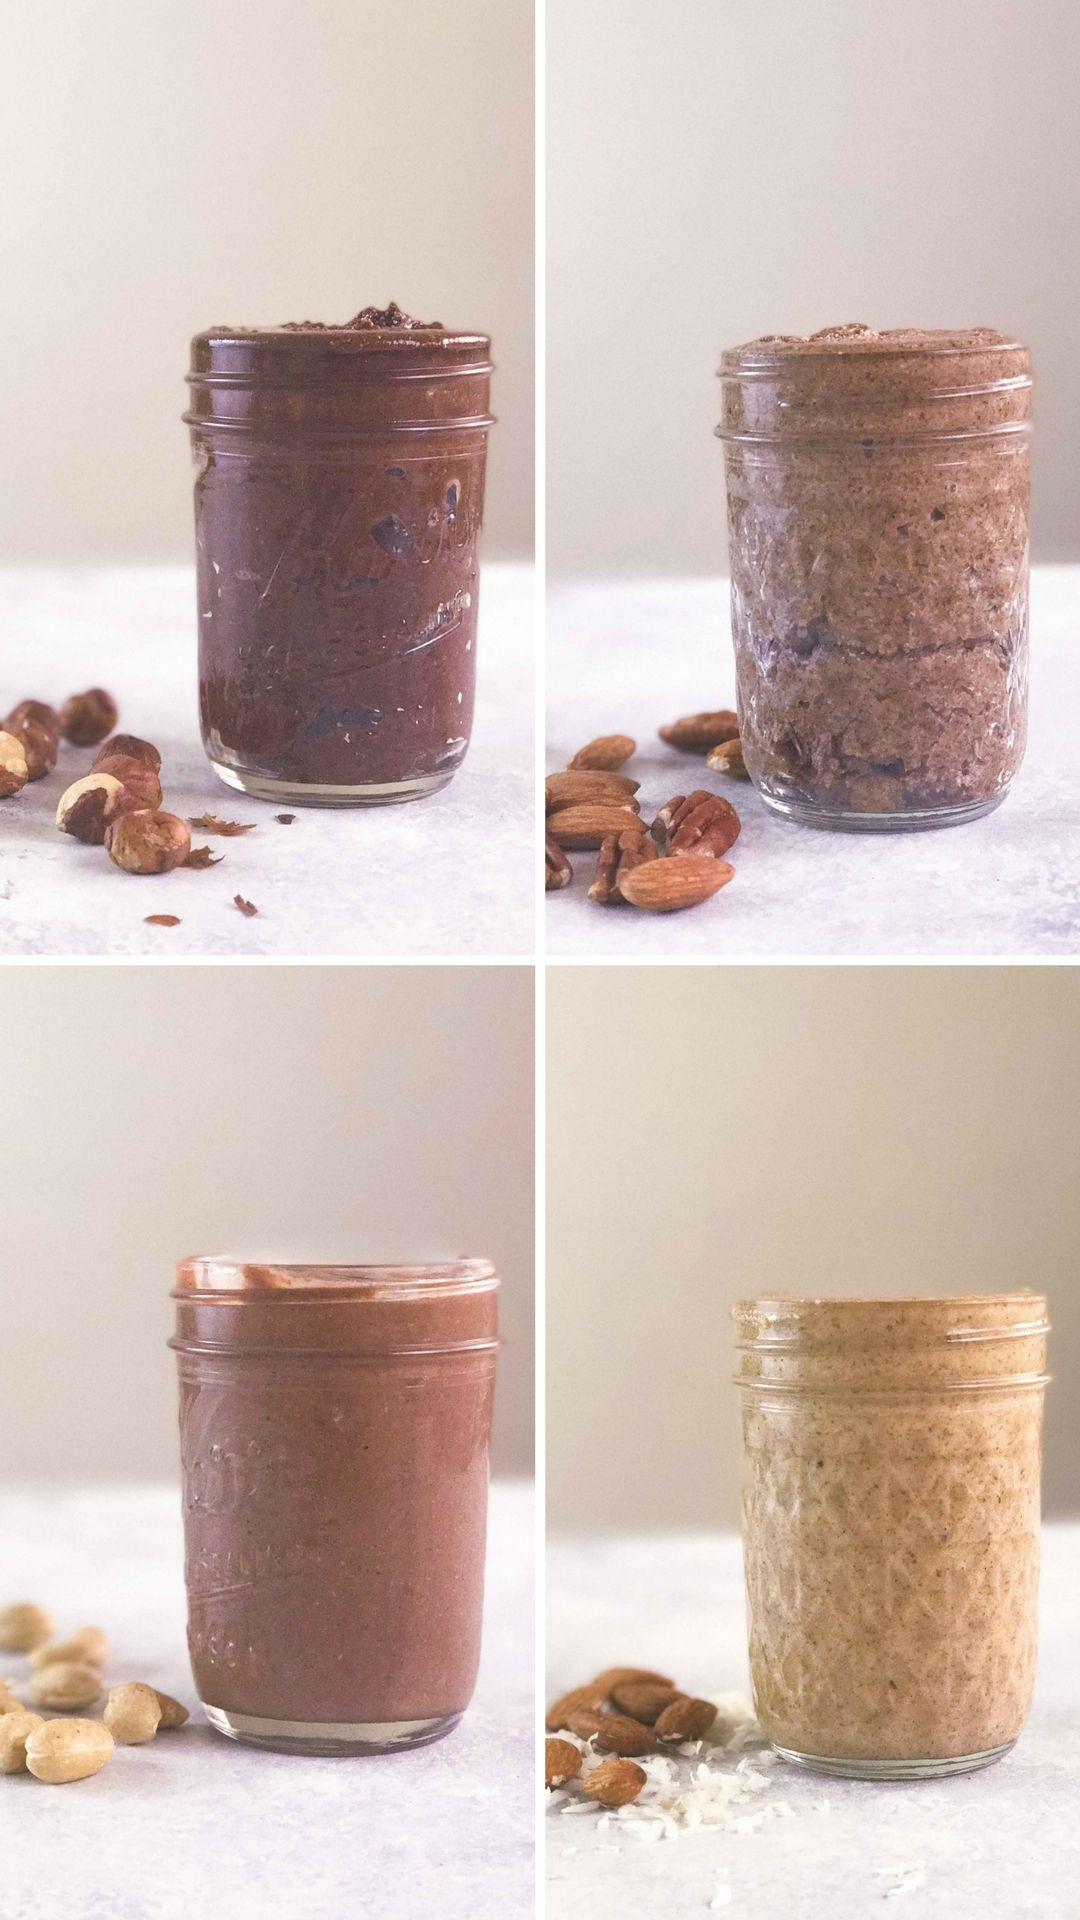 4 Homemade Nut Butters